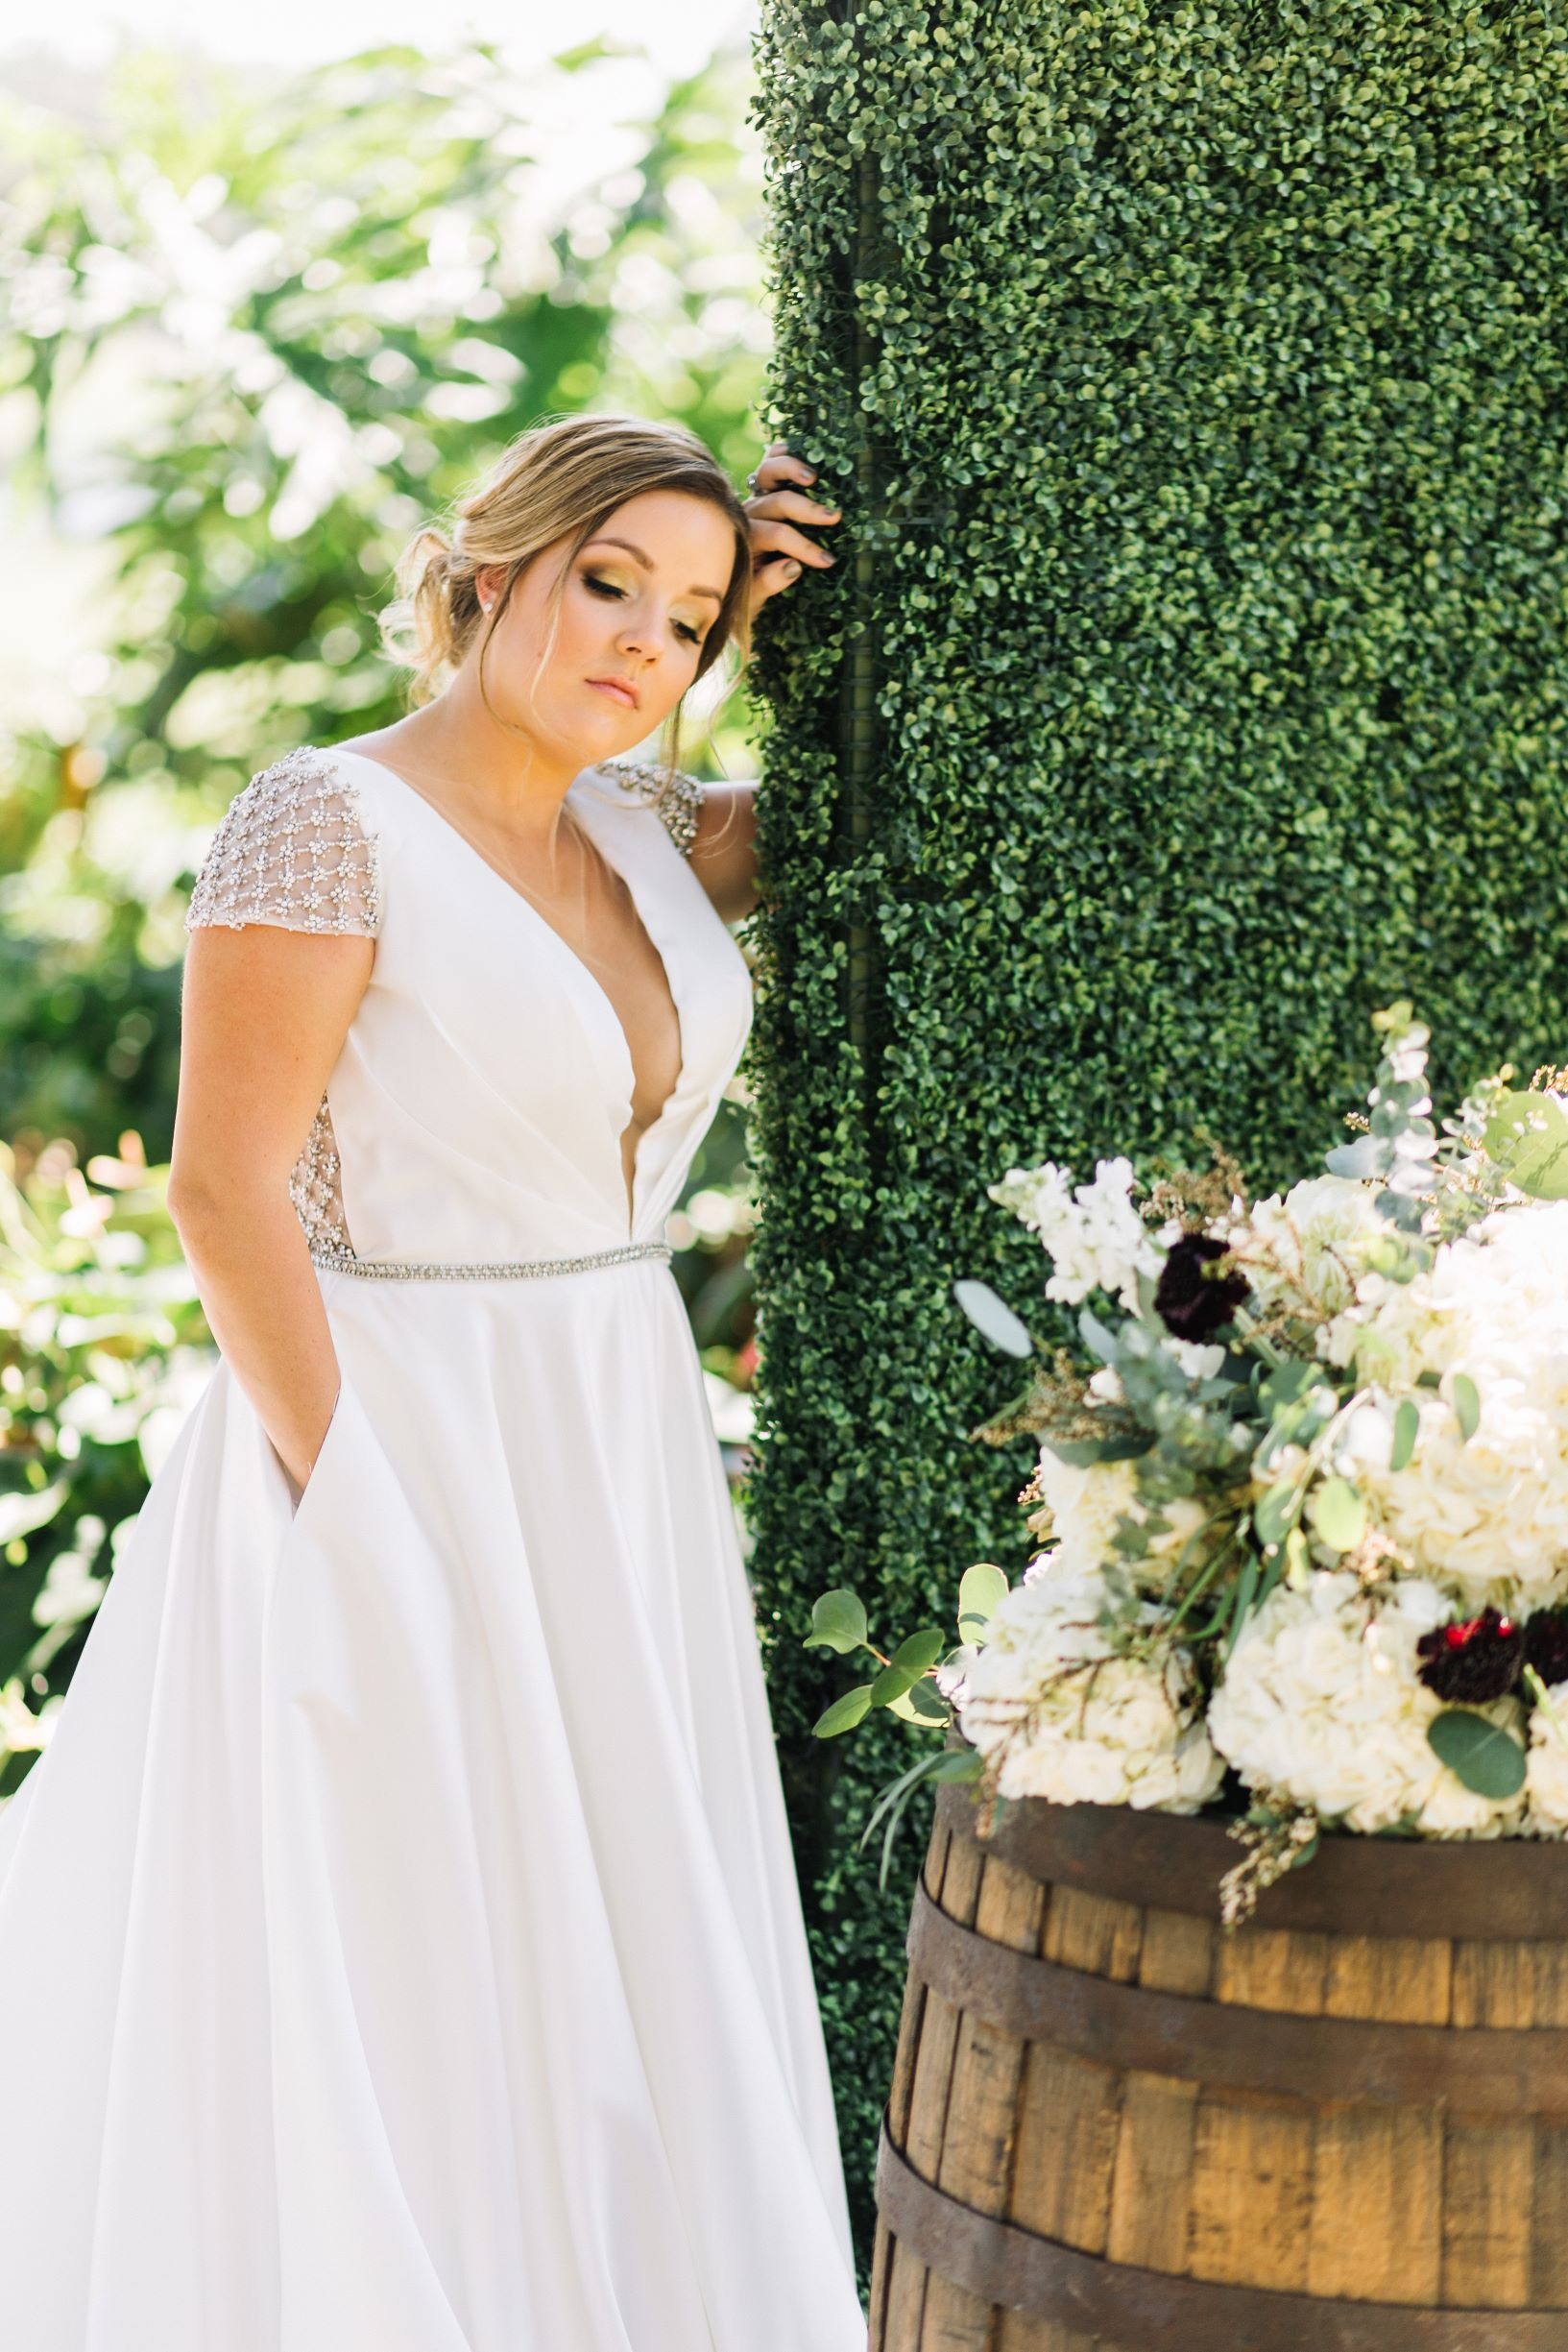 Bride standing in wedding dress with hedge wall and oak barrell